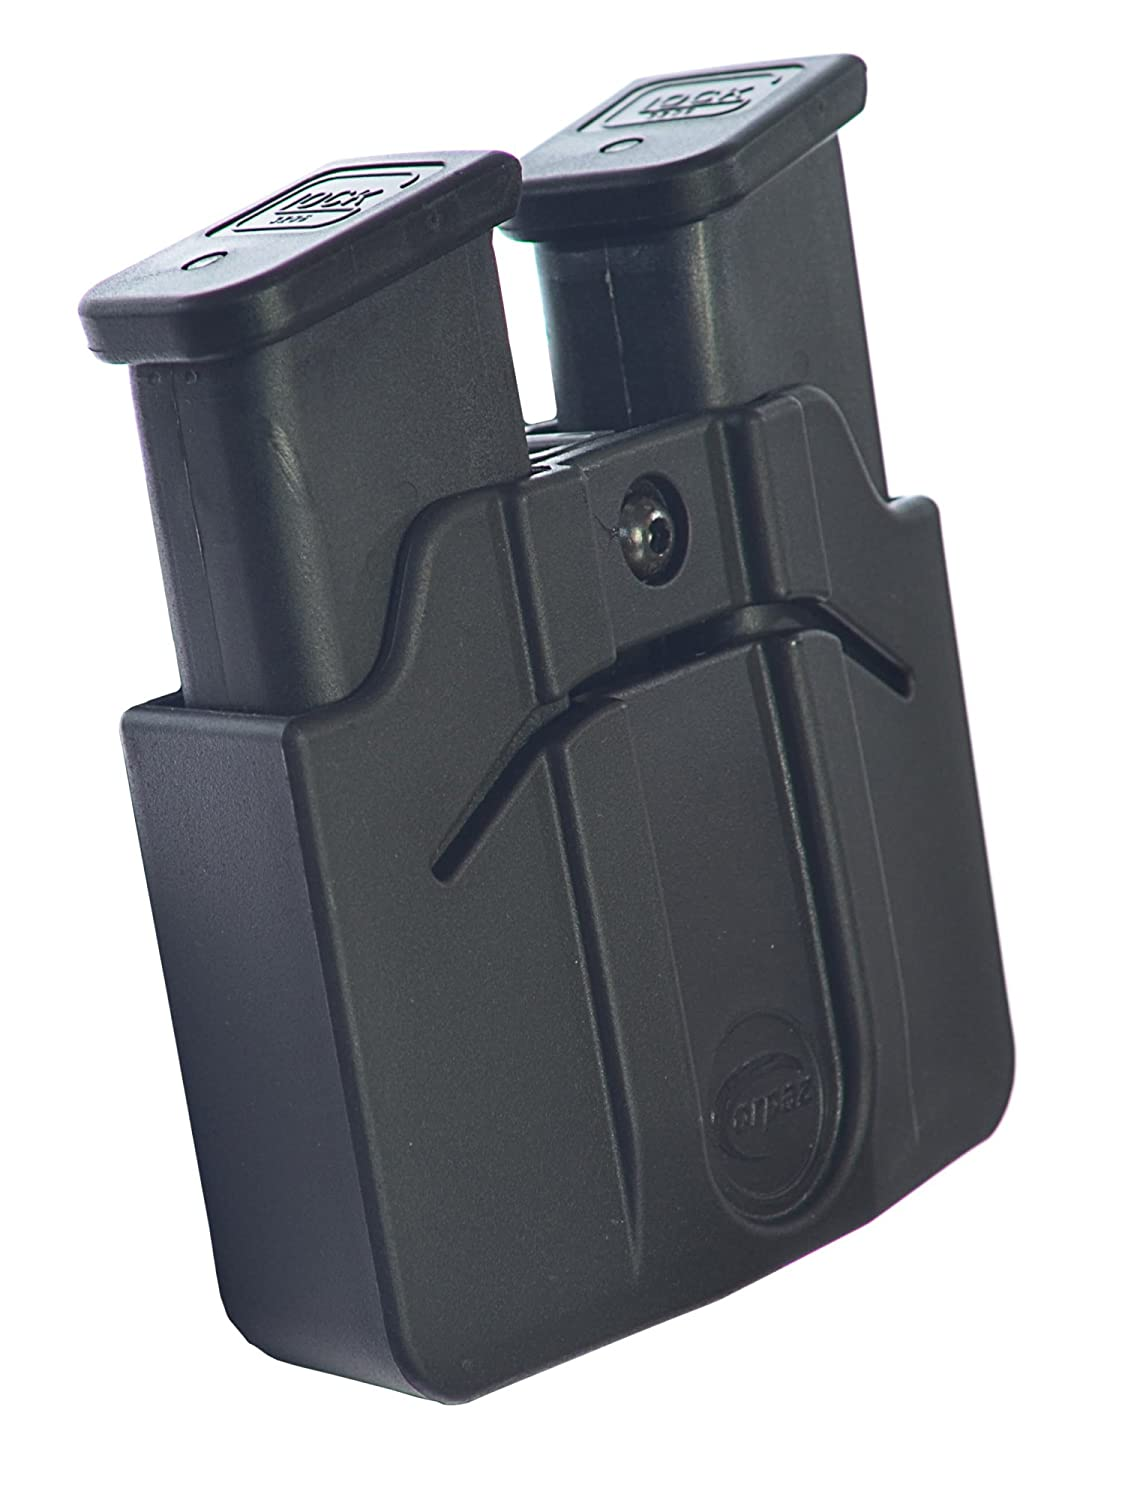 Orpaz Magazine Belt Holster Holds 2 Double Stack 9mm POLYMER Mags Adjustable for Rotation/Retention